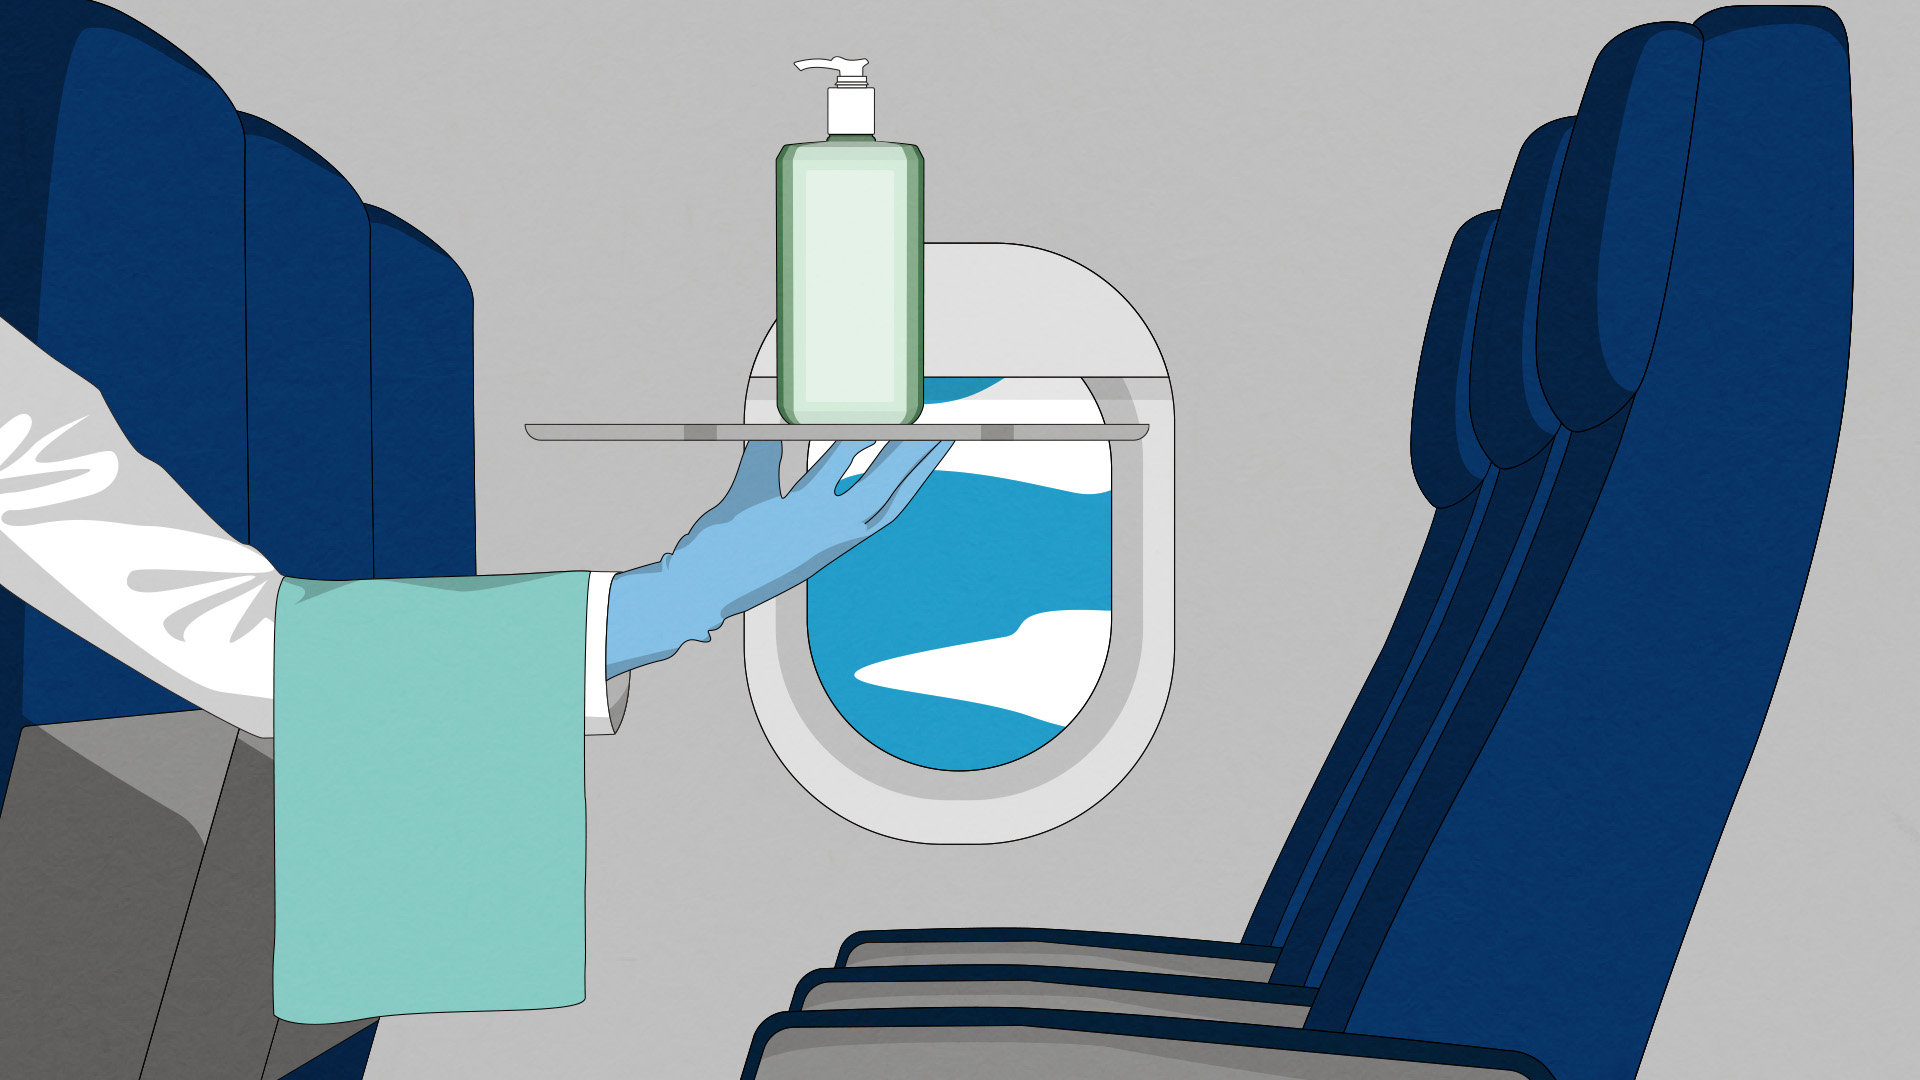 person holding a bottle of hand sanitizer on a plane